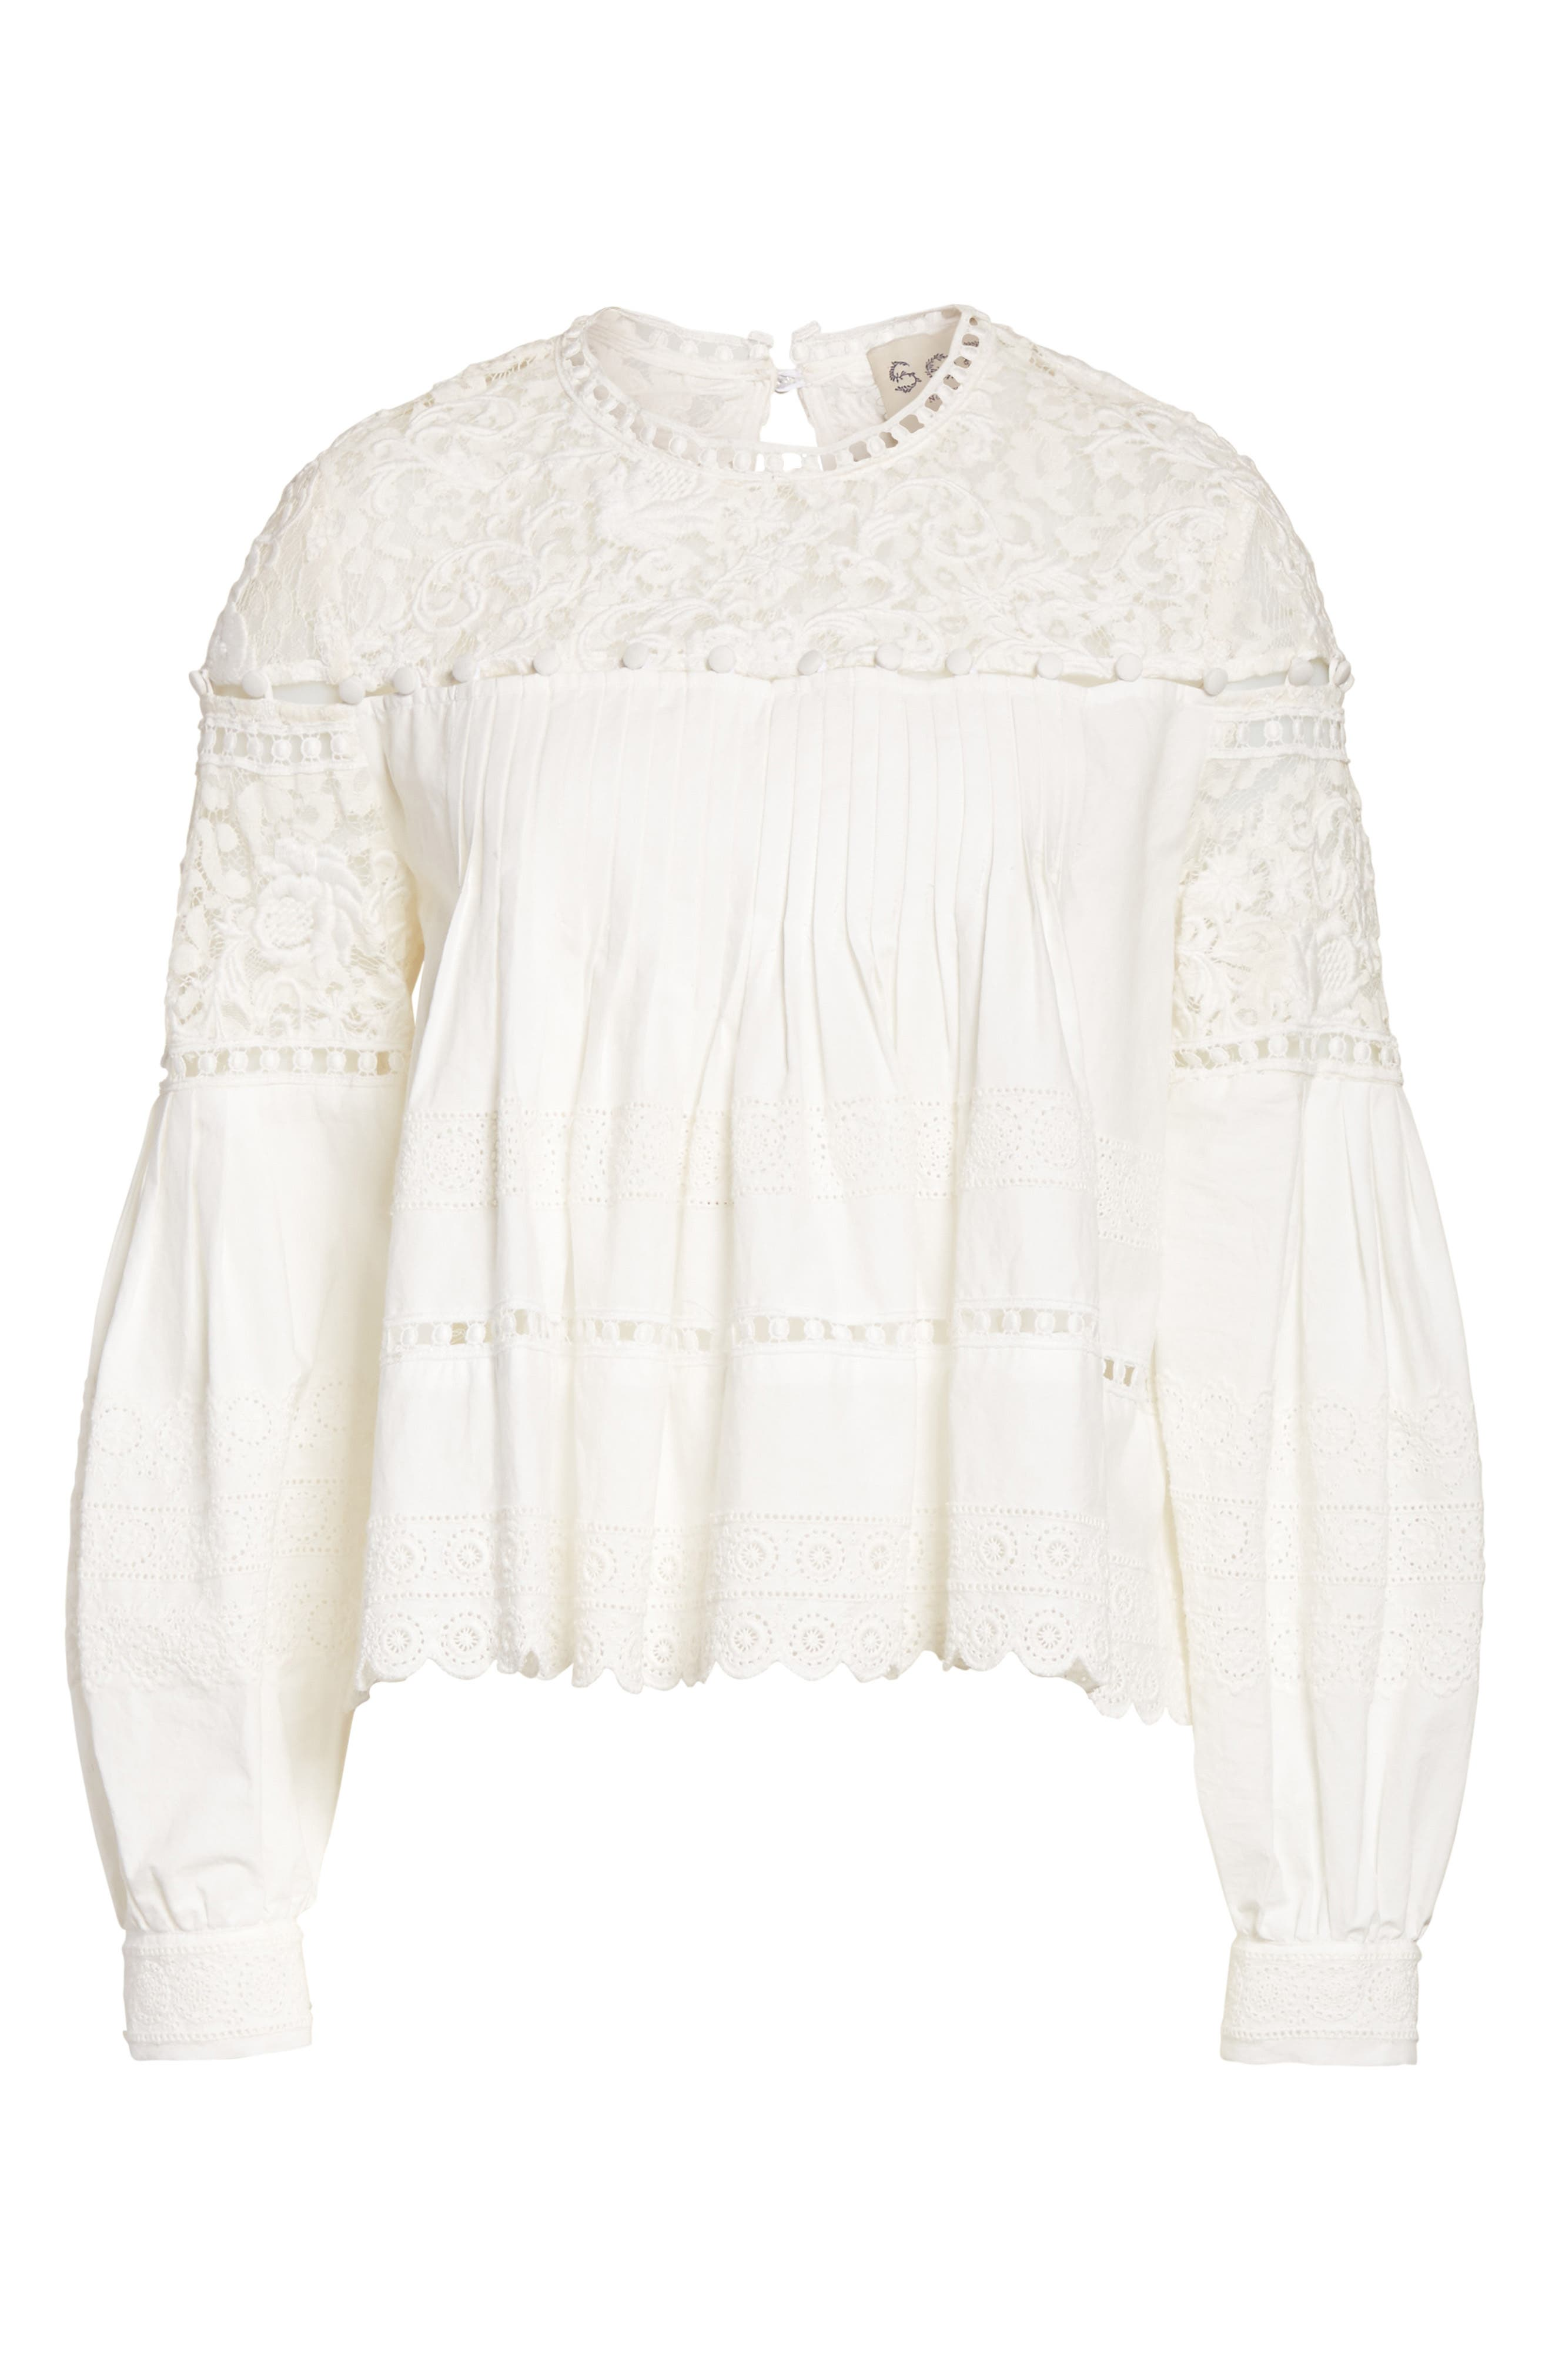 Cotton Eyelet Blouse,                             Alternate thumbnail 6, color,                             Cream